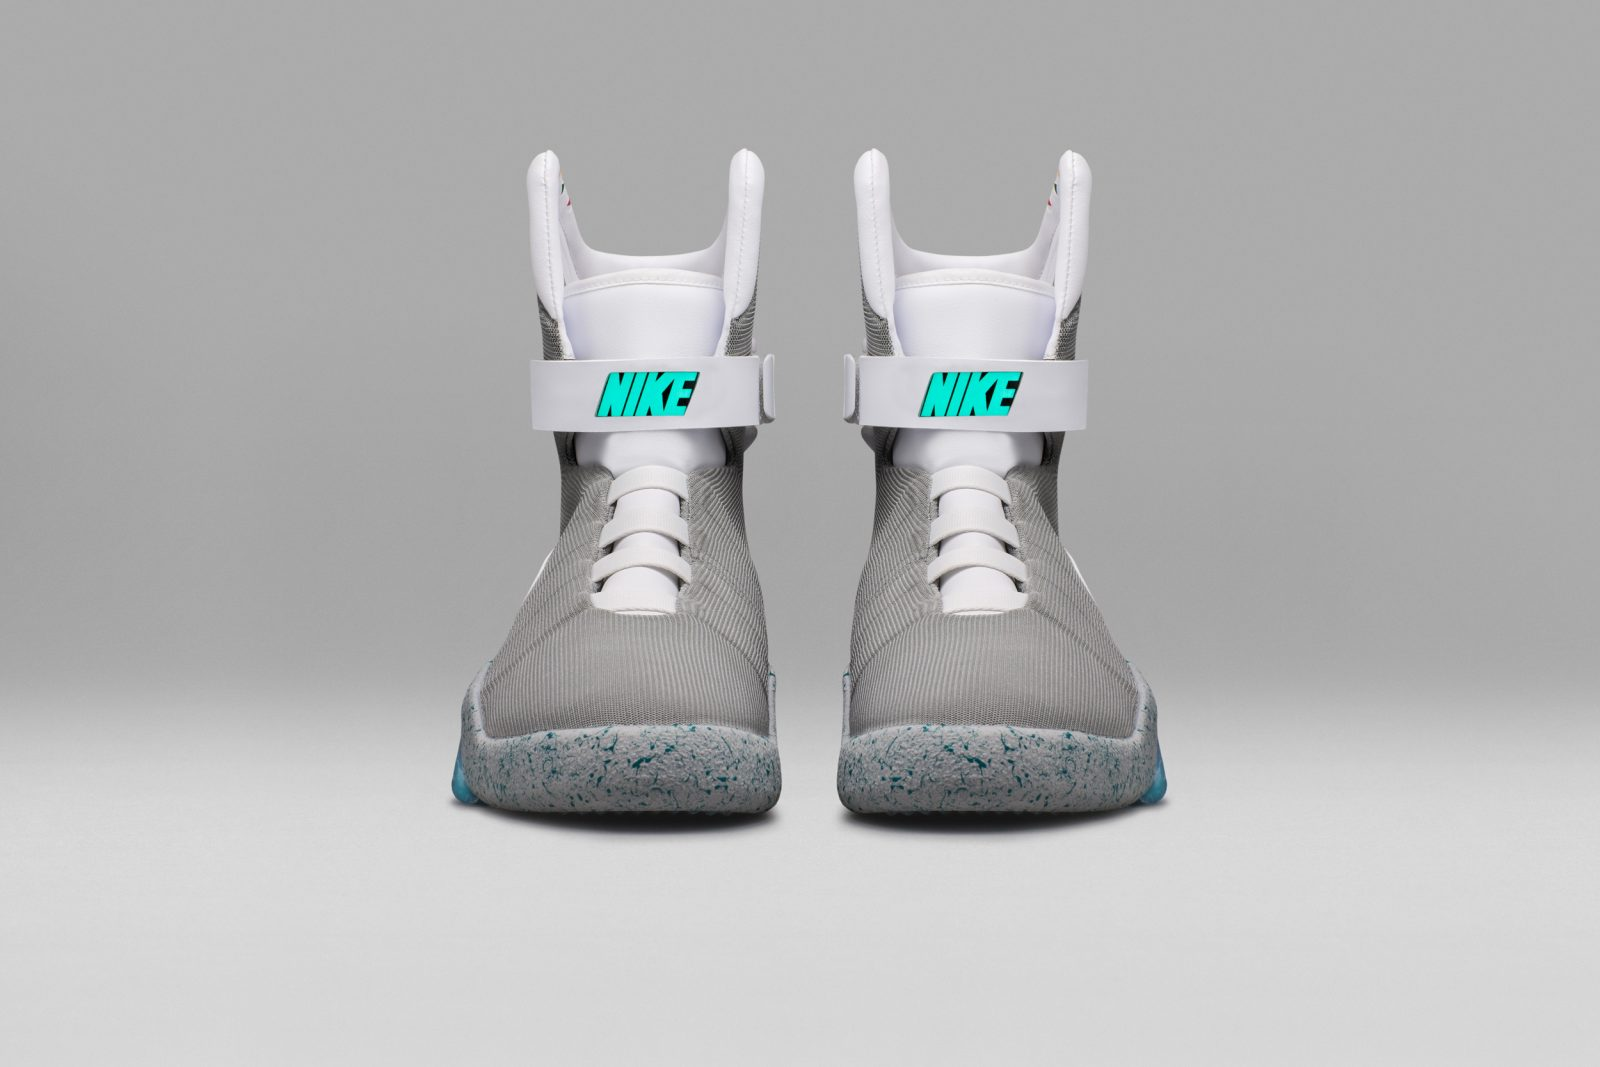 nike-mag-2016-official-08_original